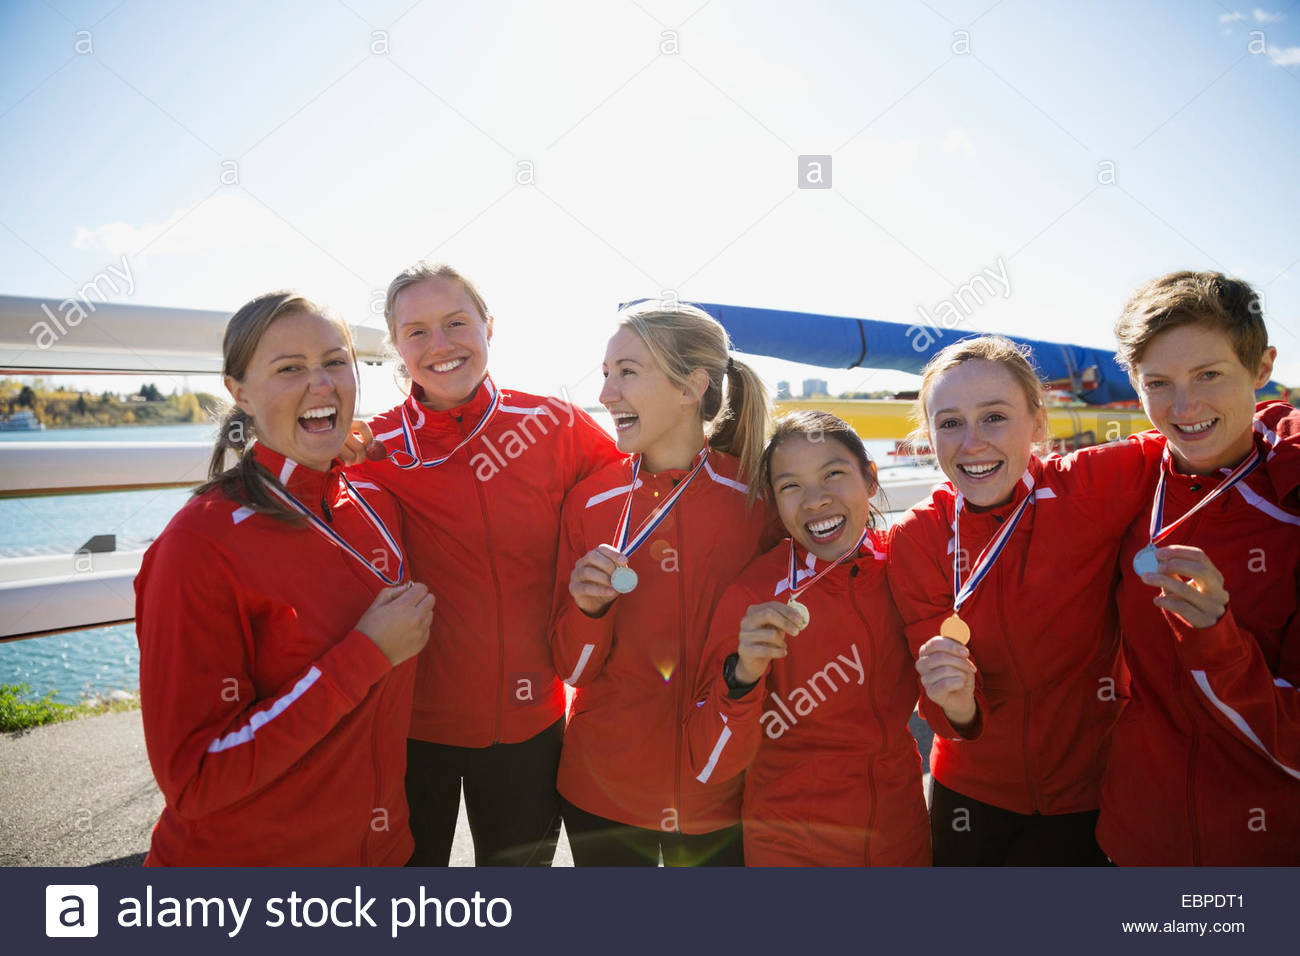 Portrait of rowing team with medals celebrating - Stock Image